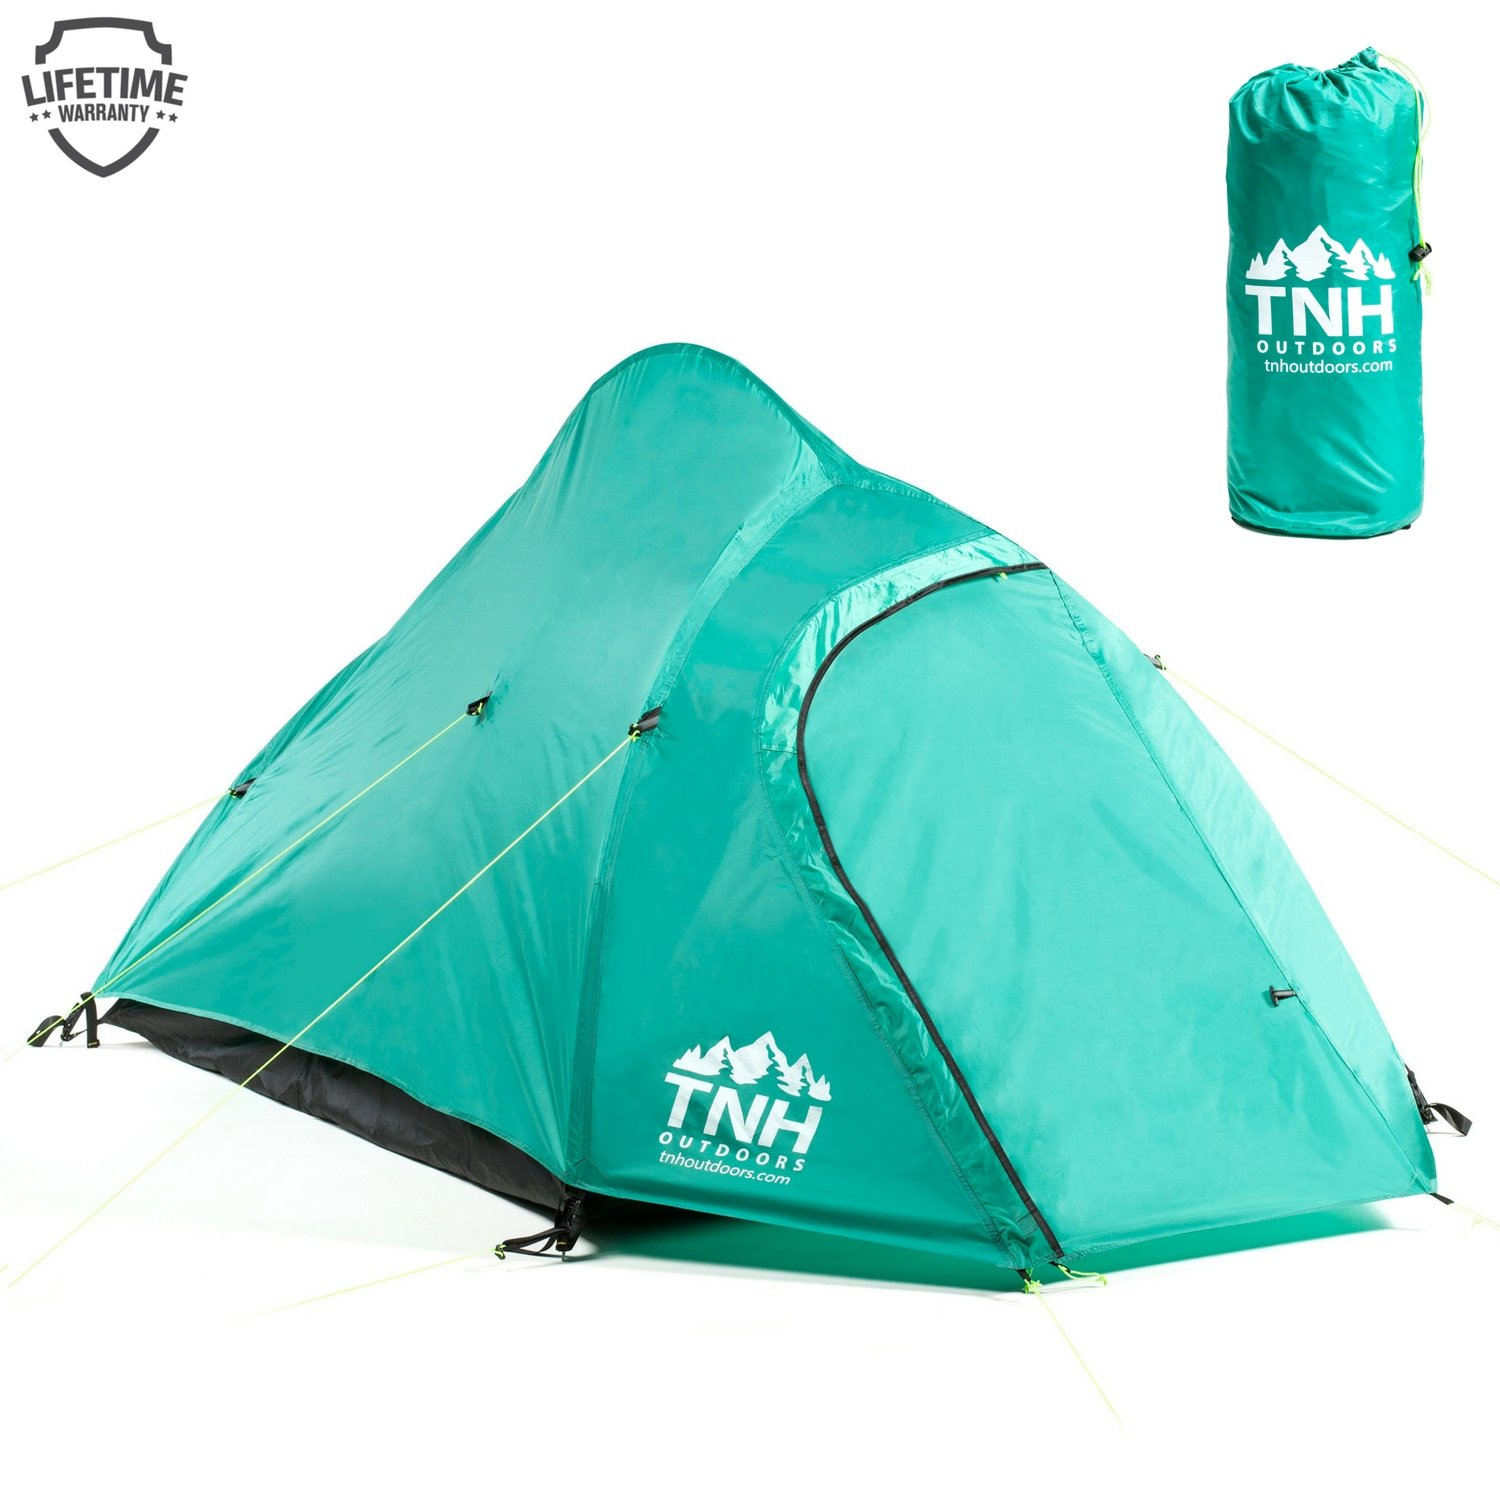 TNH Outdoors 2 Person C&ing u0026 Backpacking Tent with Carry Bag and Stakes - Portable Lightweight  sc 1 st  Amazon.com & Camping Backpack to Carry Tent: Amazon.com